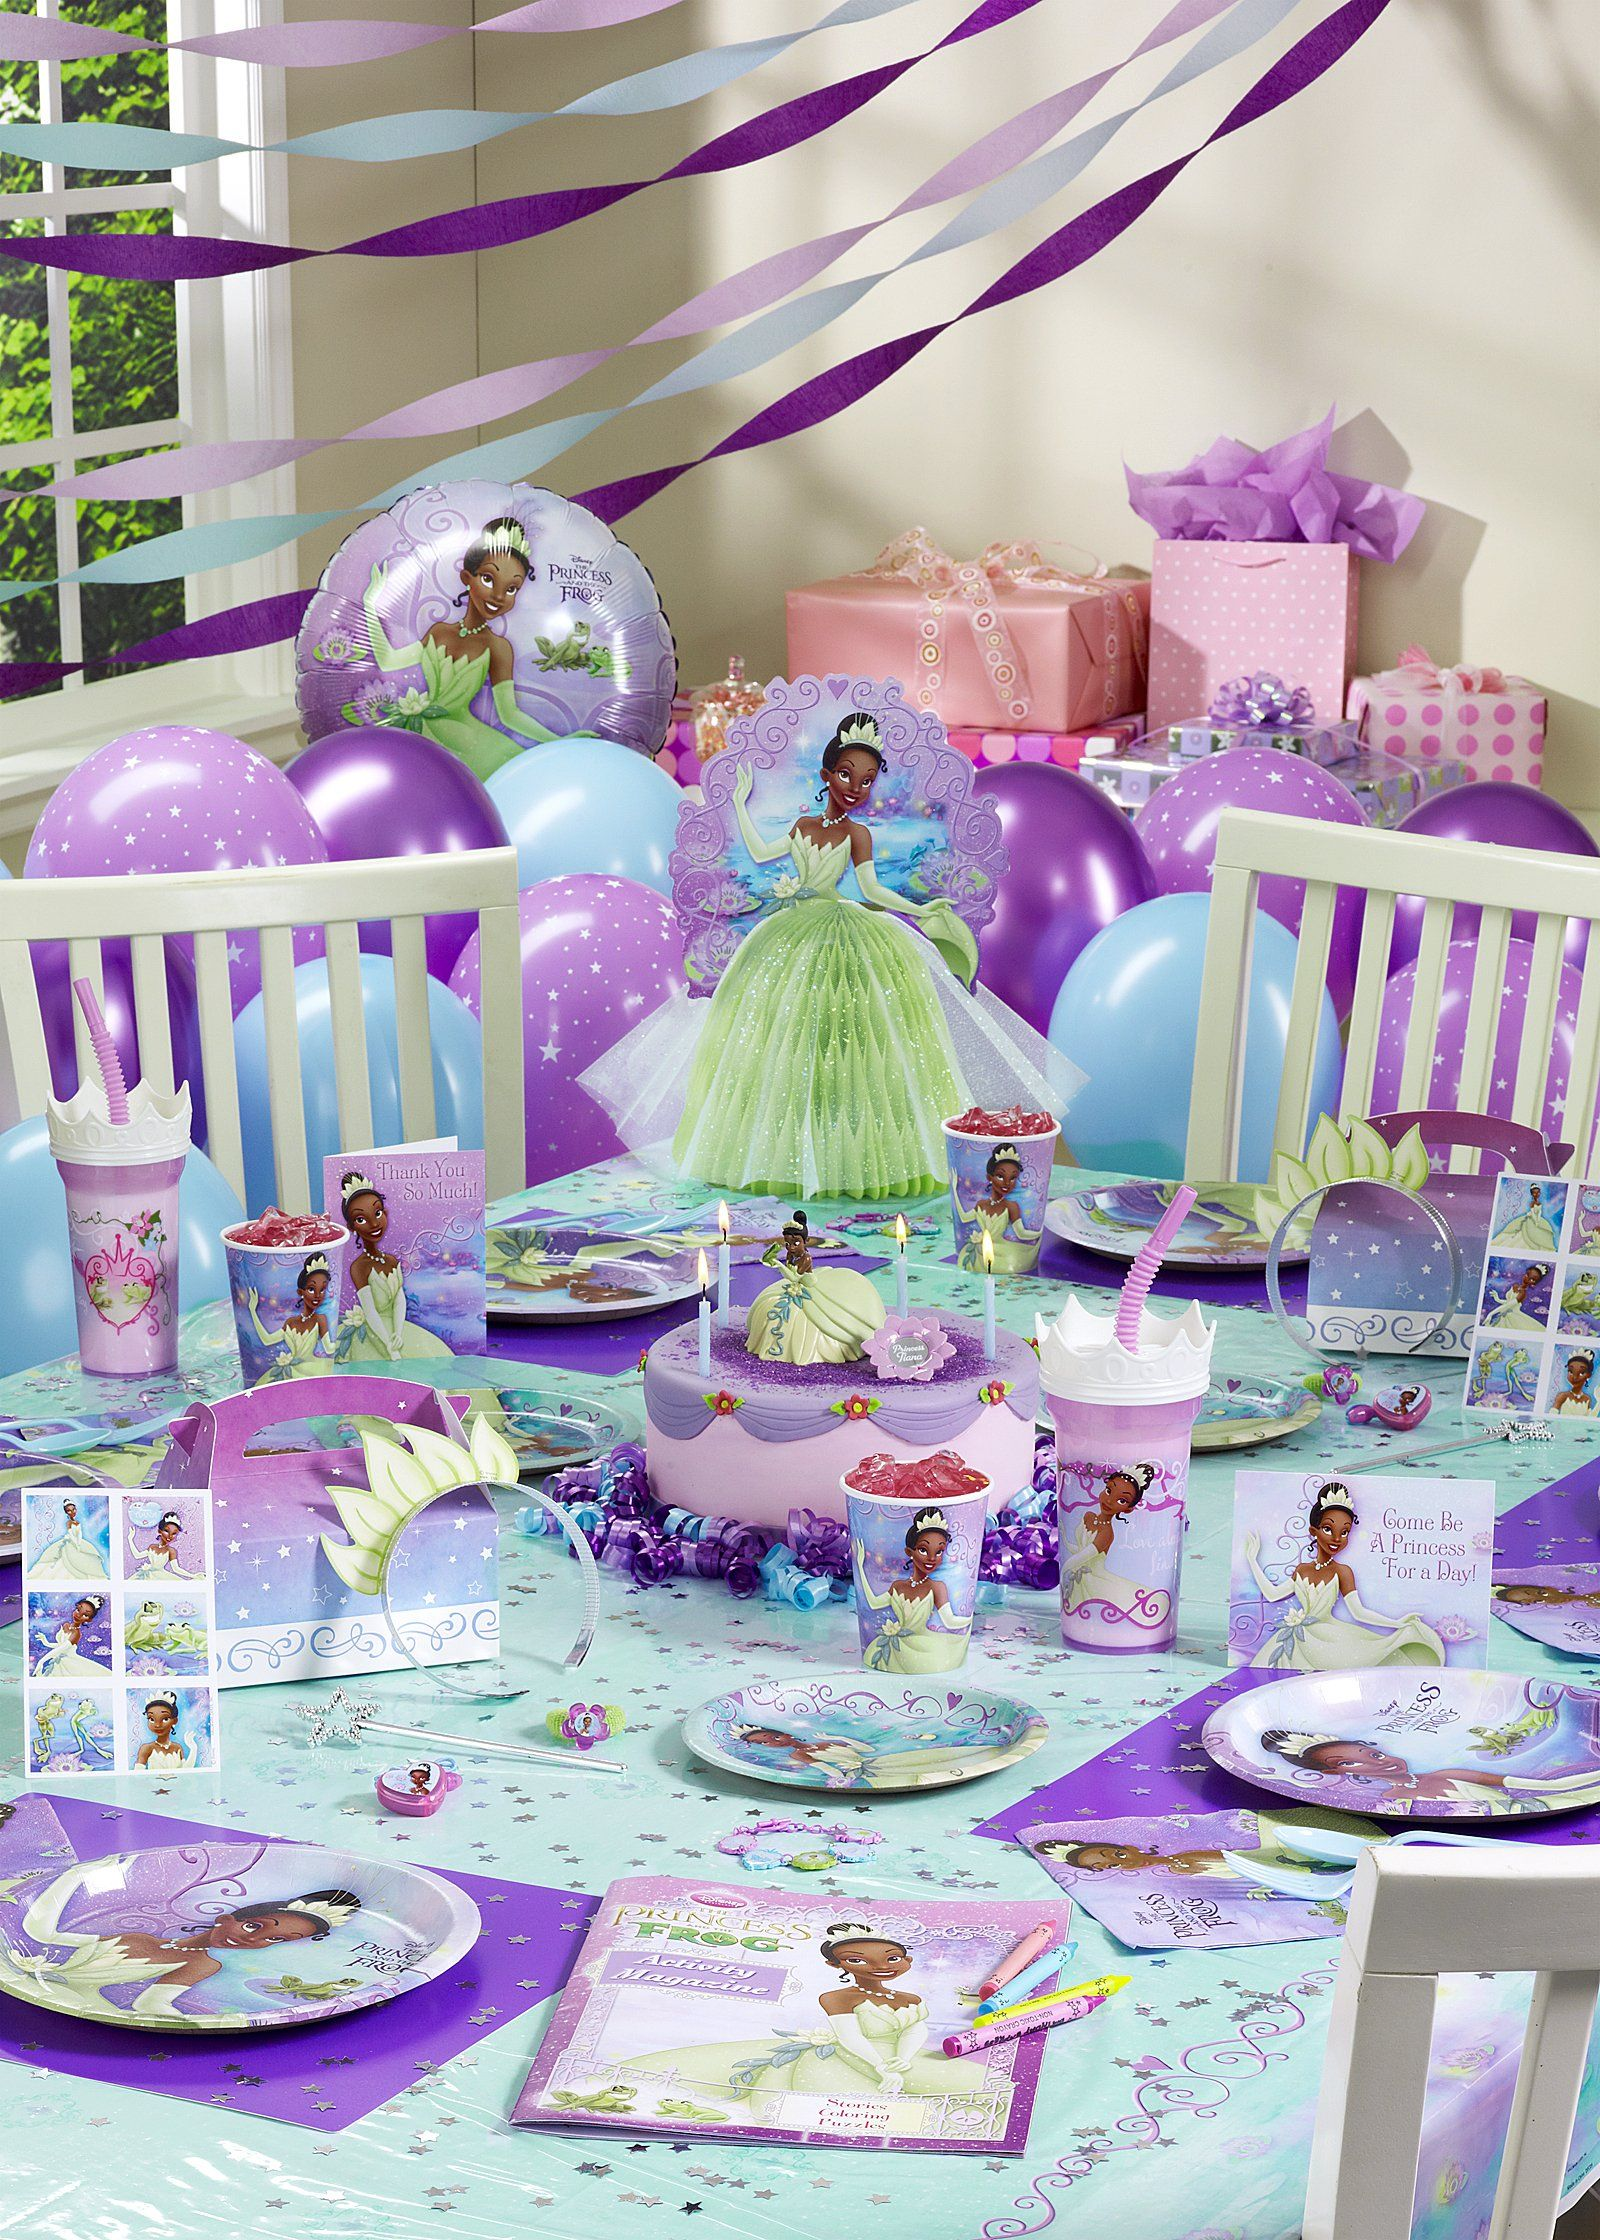 incredible Princess And The Frog Birthday Party Decorations Part - 1: Buy a HUGE selection of Princess and the Frog birthday party supplies on  sale now!